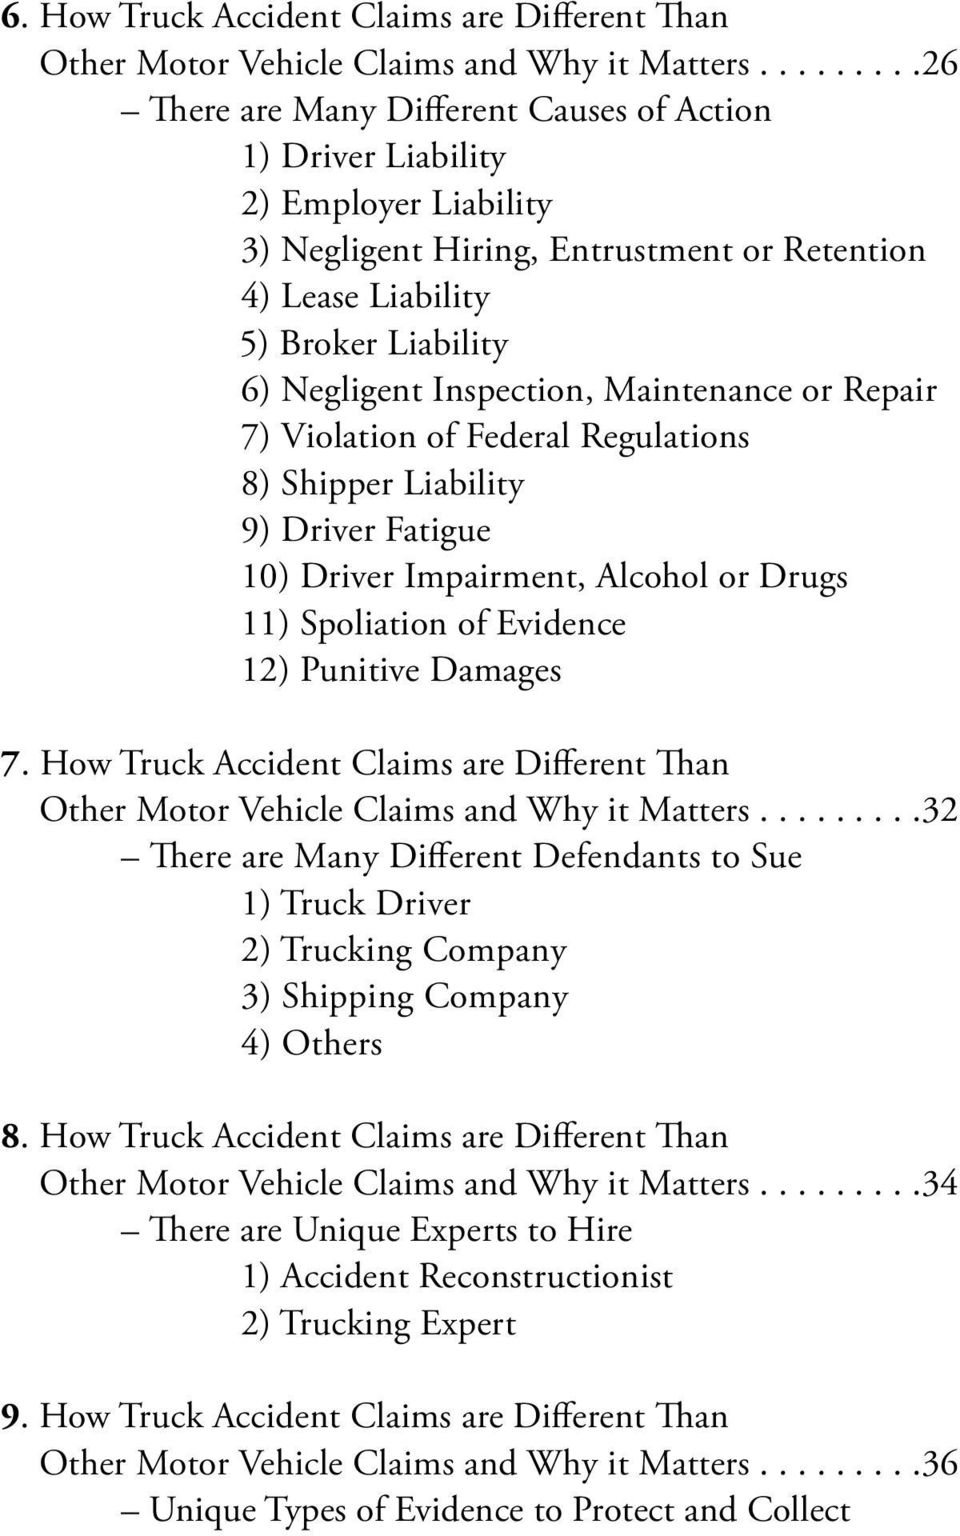 Inspection, Maintenance or Repair 7) Violation of Federal Regulations 8) Shipper Liability 9) Driver Fatigue 10) Driver Impairment, Alcohol or Drugs 11) Spoliation of Evidence 12) Punitive Damages 7.